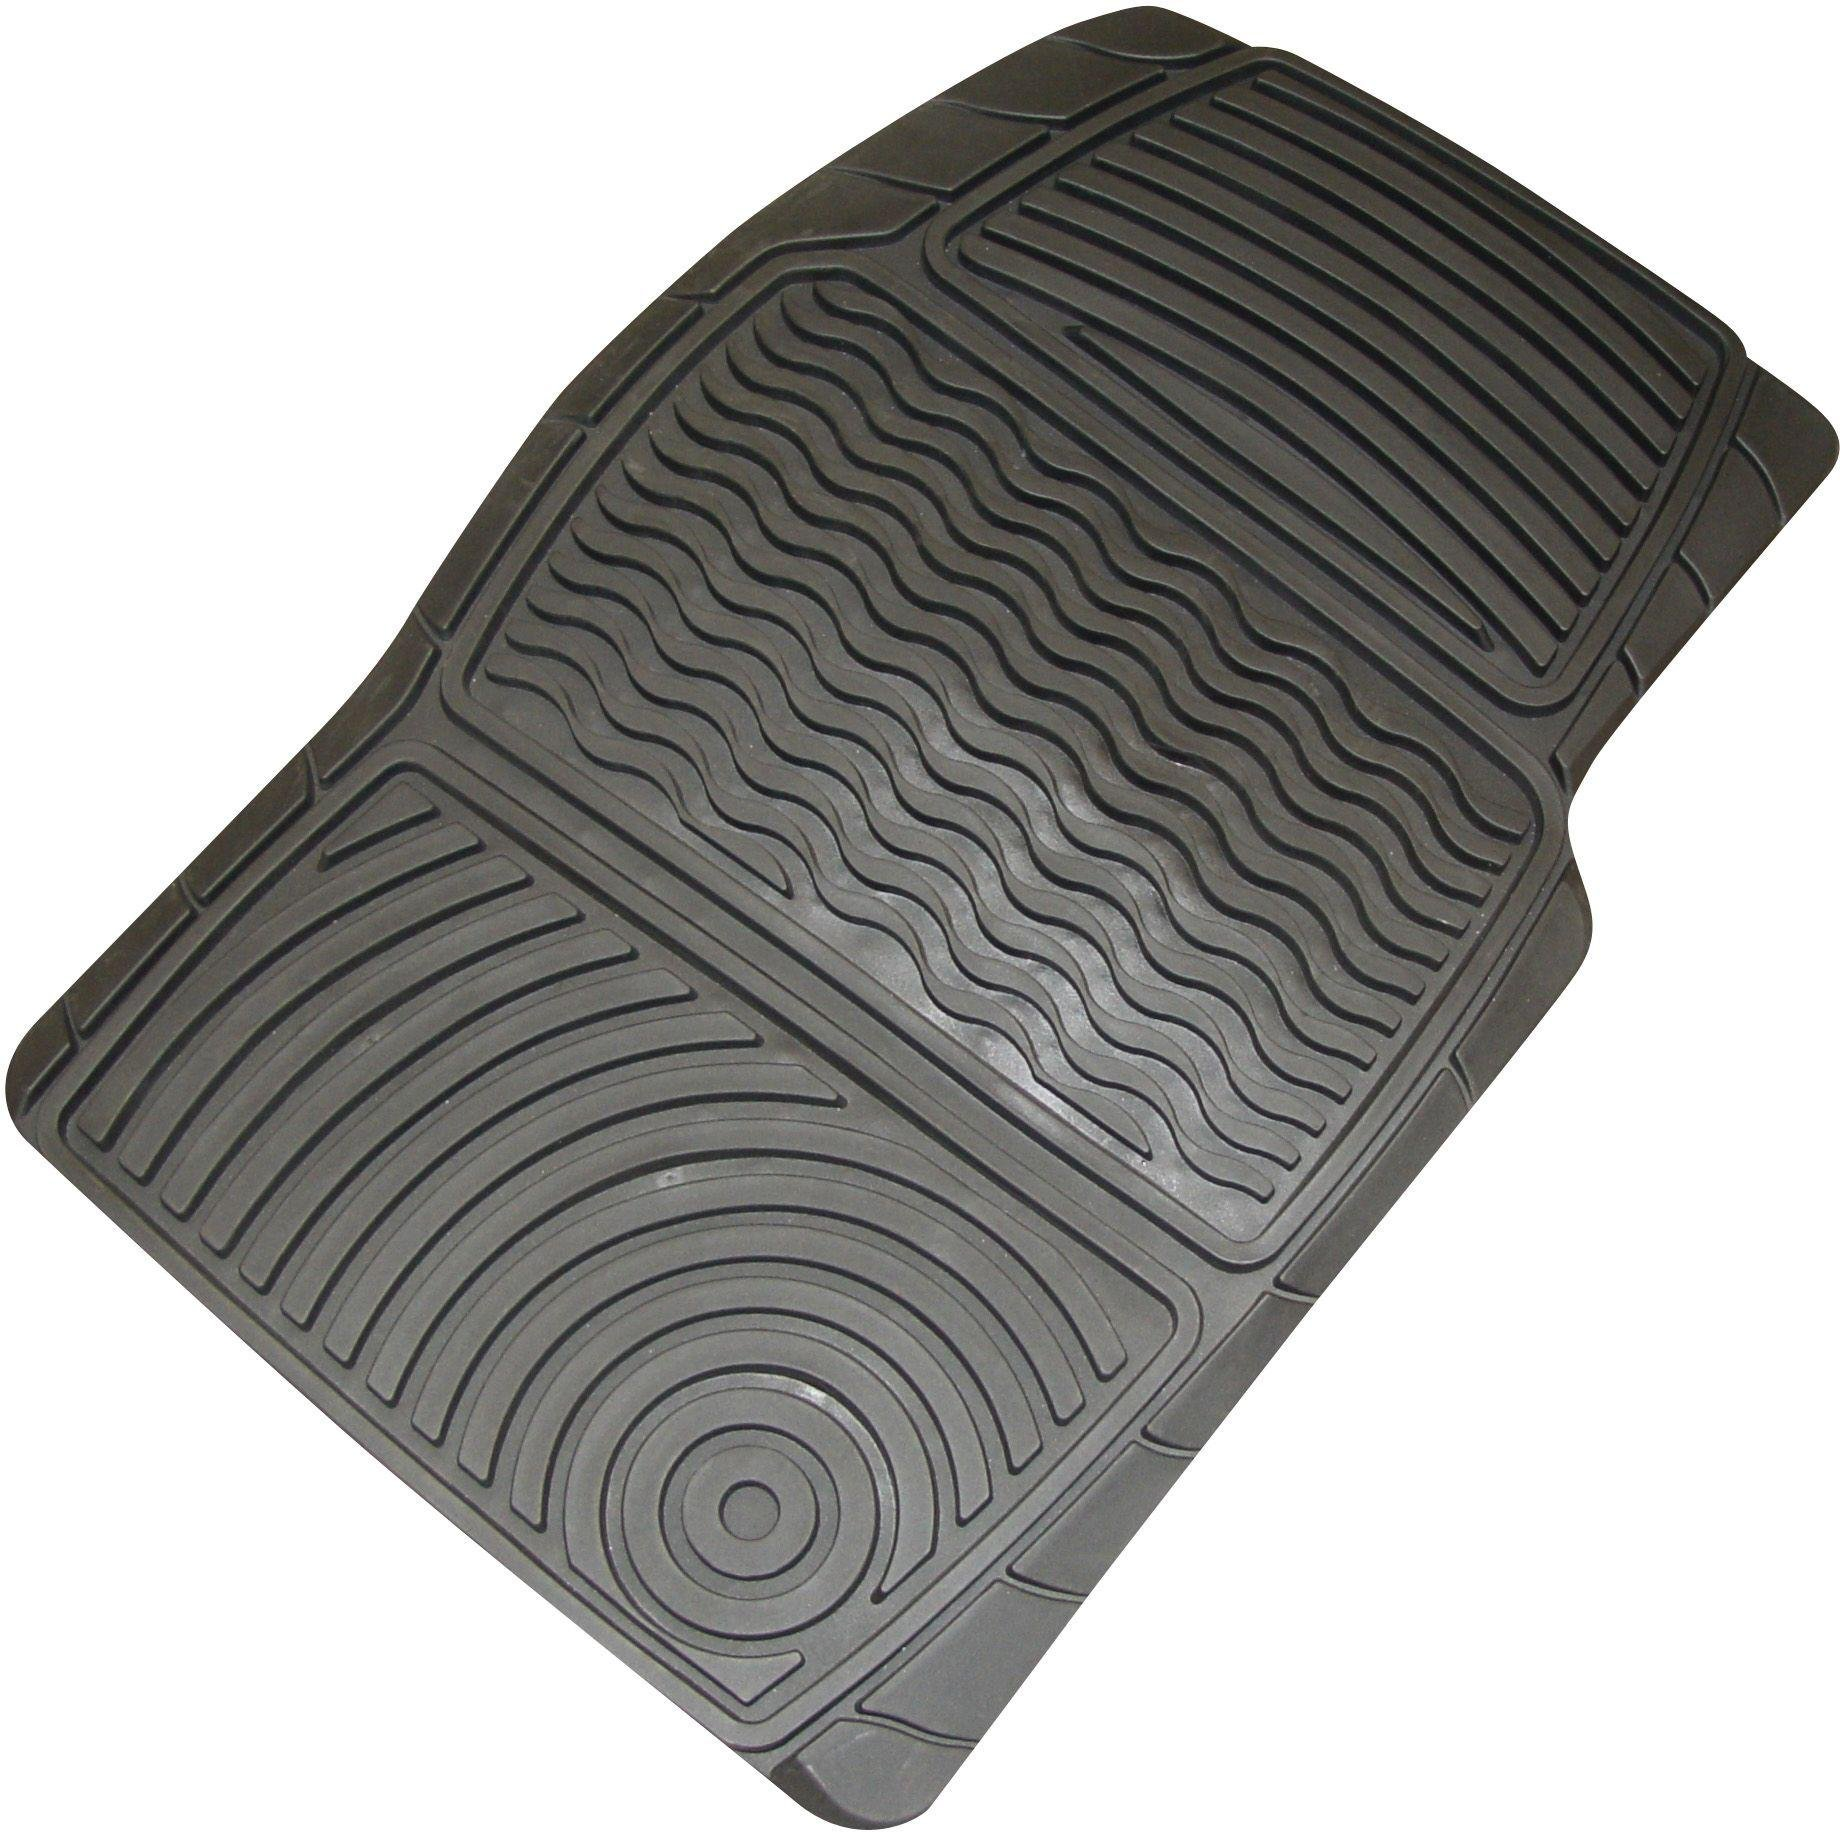 Rubber mats glasgow - Cosmos Primo All Weather 4 Piece Car Mat